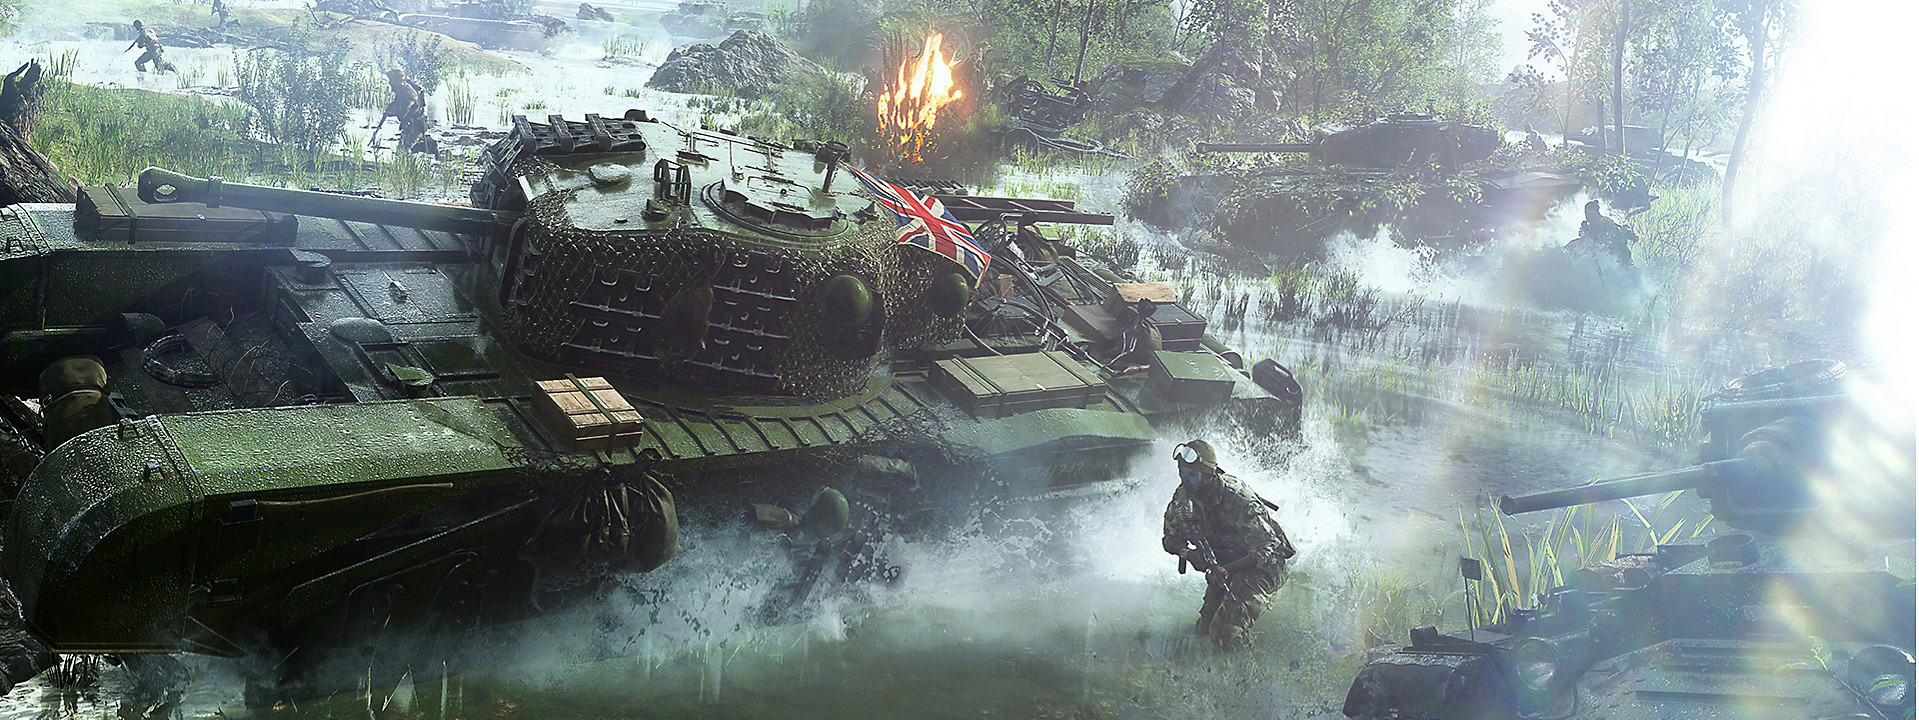 https://media.playstation.com/is/image/SCEA/battlefield-v-hero-banner-02-ps4-us-27aug18?$native_xxl_nt$